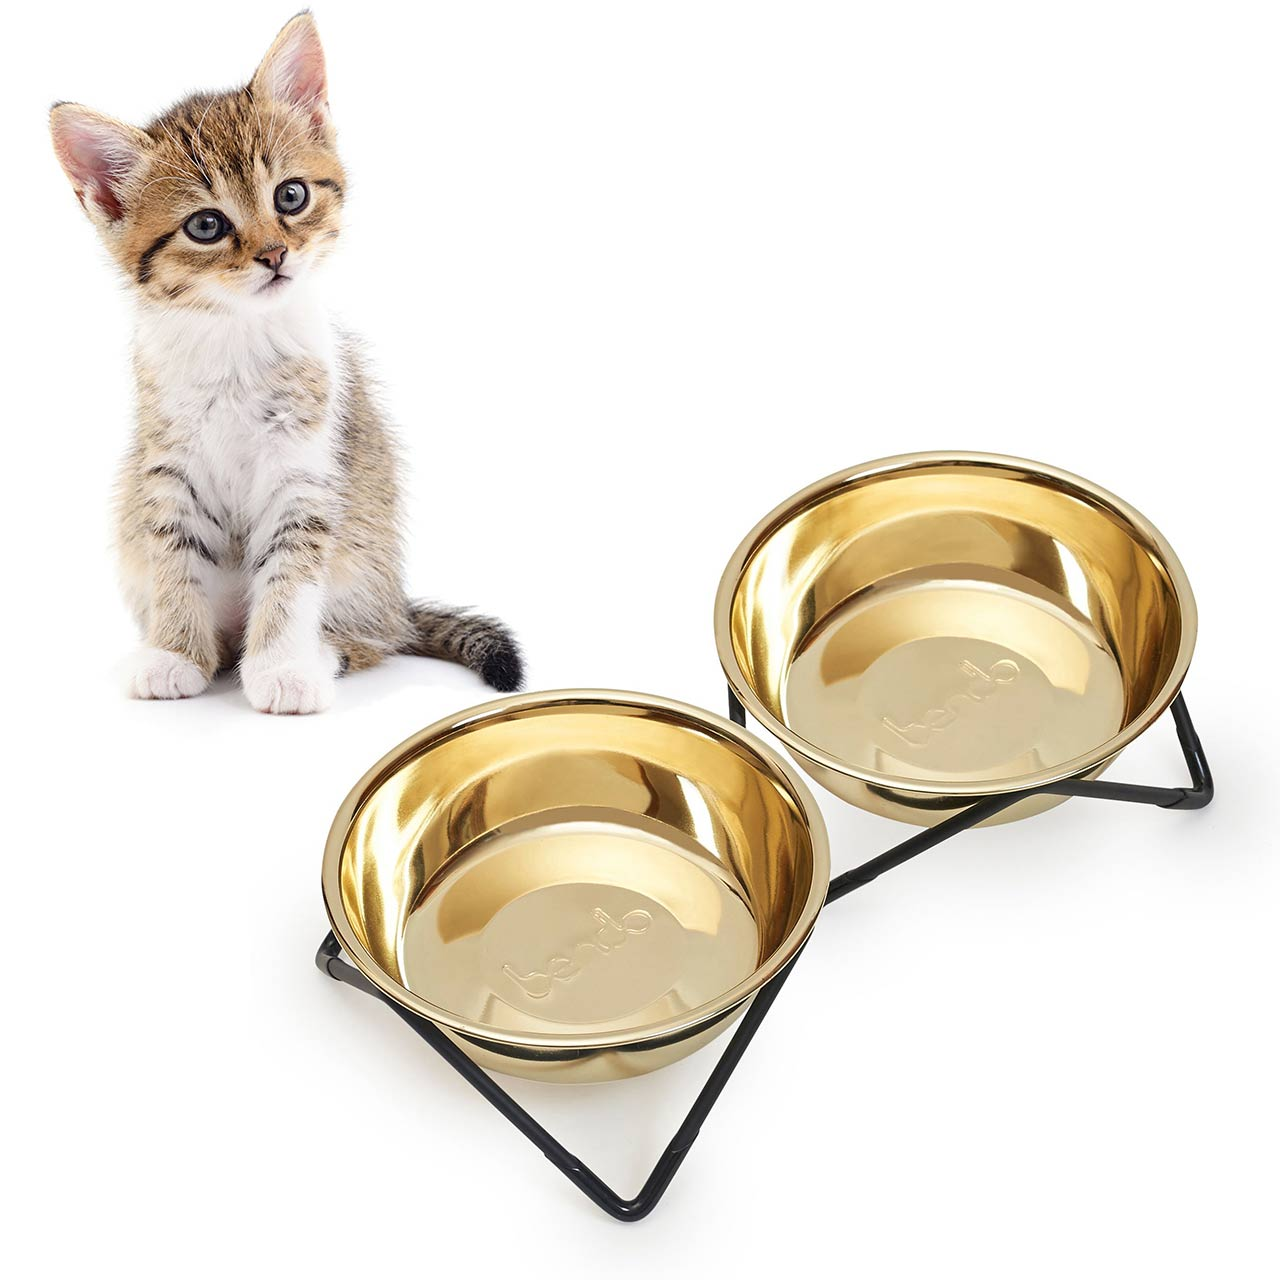 BENDO meow meow luxe cat double dish gold on black | the design gift shop